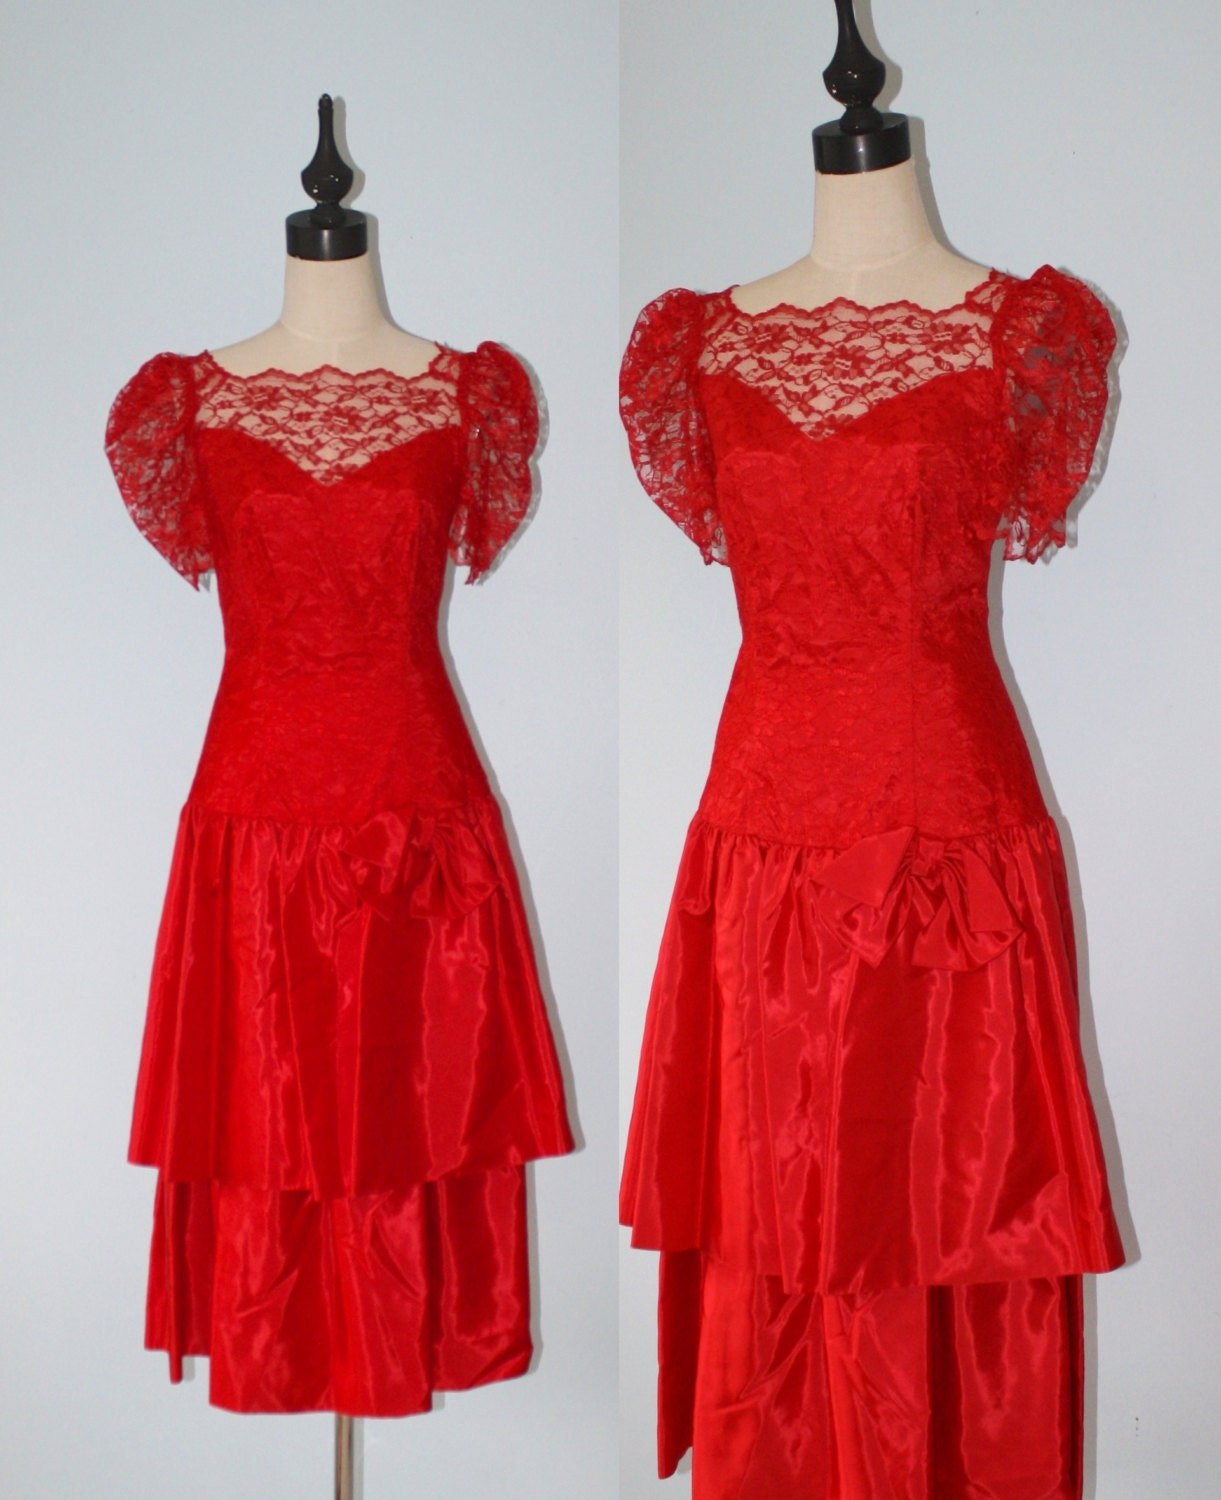 Vintage 1980 S Party Dress Lace Tulle Skirt Drop Waist: Vintage Red Lace Party Dress / 1980s Chantilly Lace And Satin